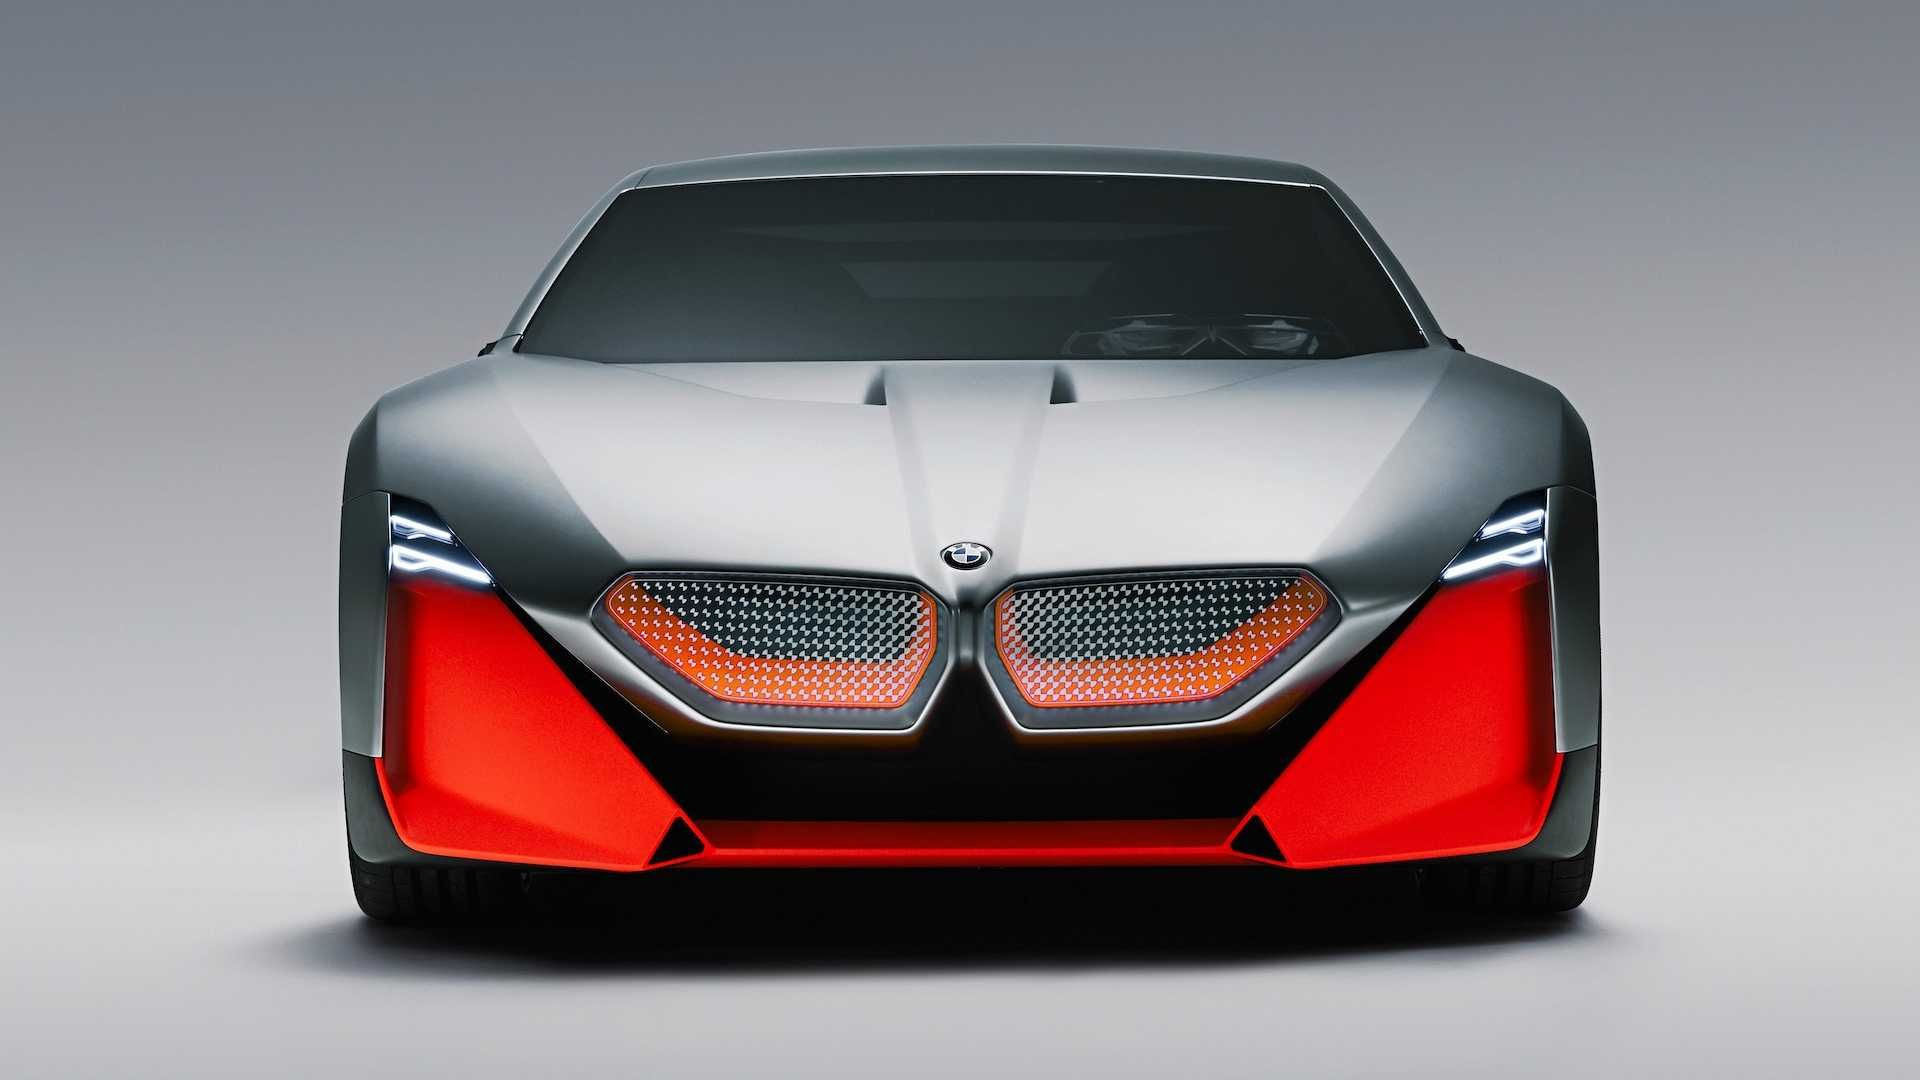 Bmw Vision M Concept Is A Stunning And Futuristic M1 Bmw Design Sports Car Electric Sports Car